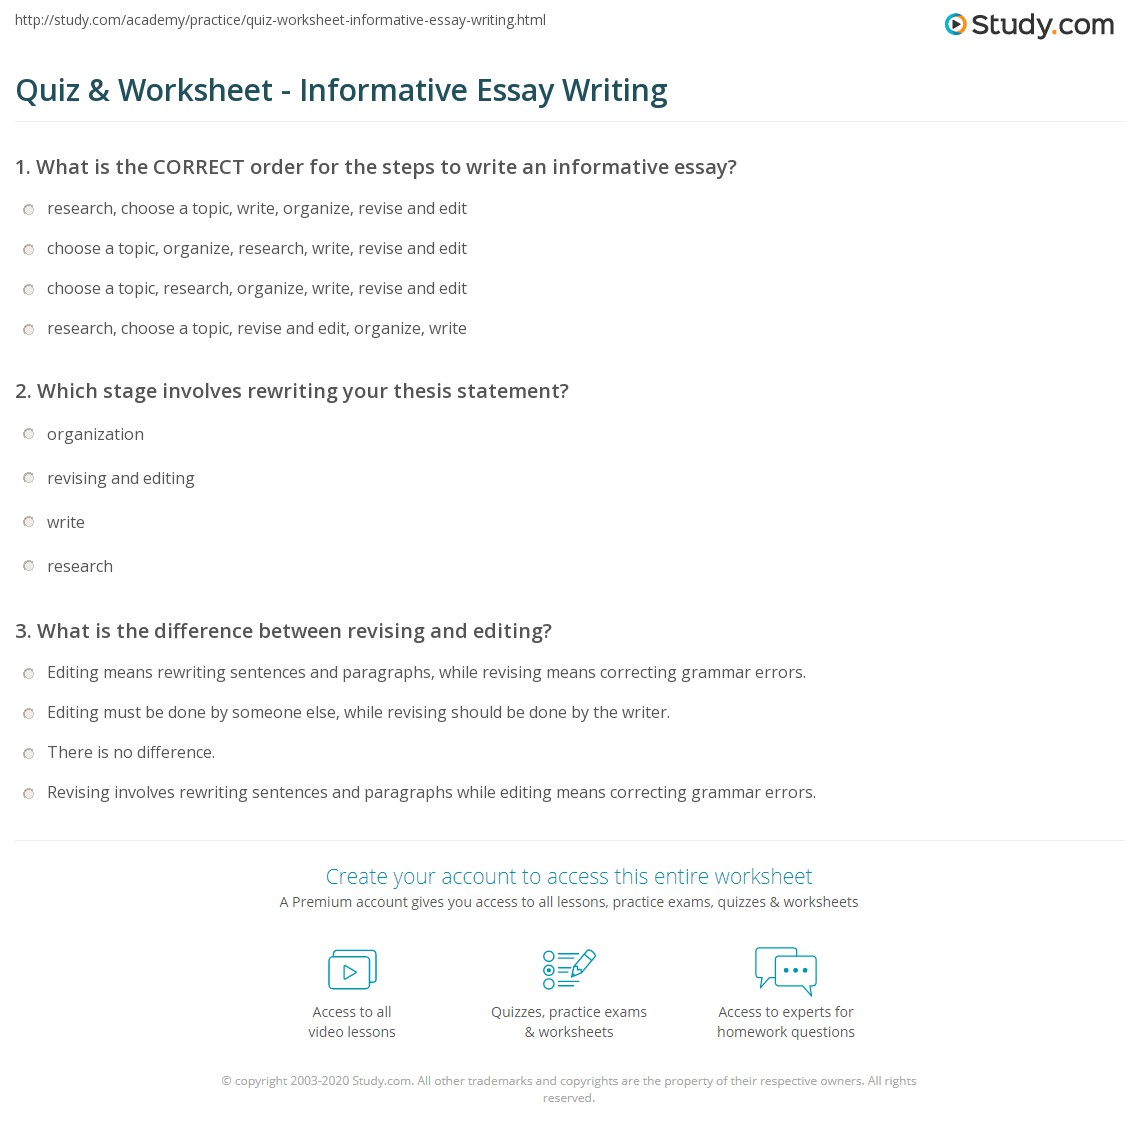 Quiz Worksheet Informative Essay Writing – Informative Essay